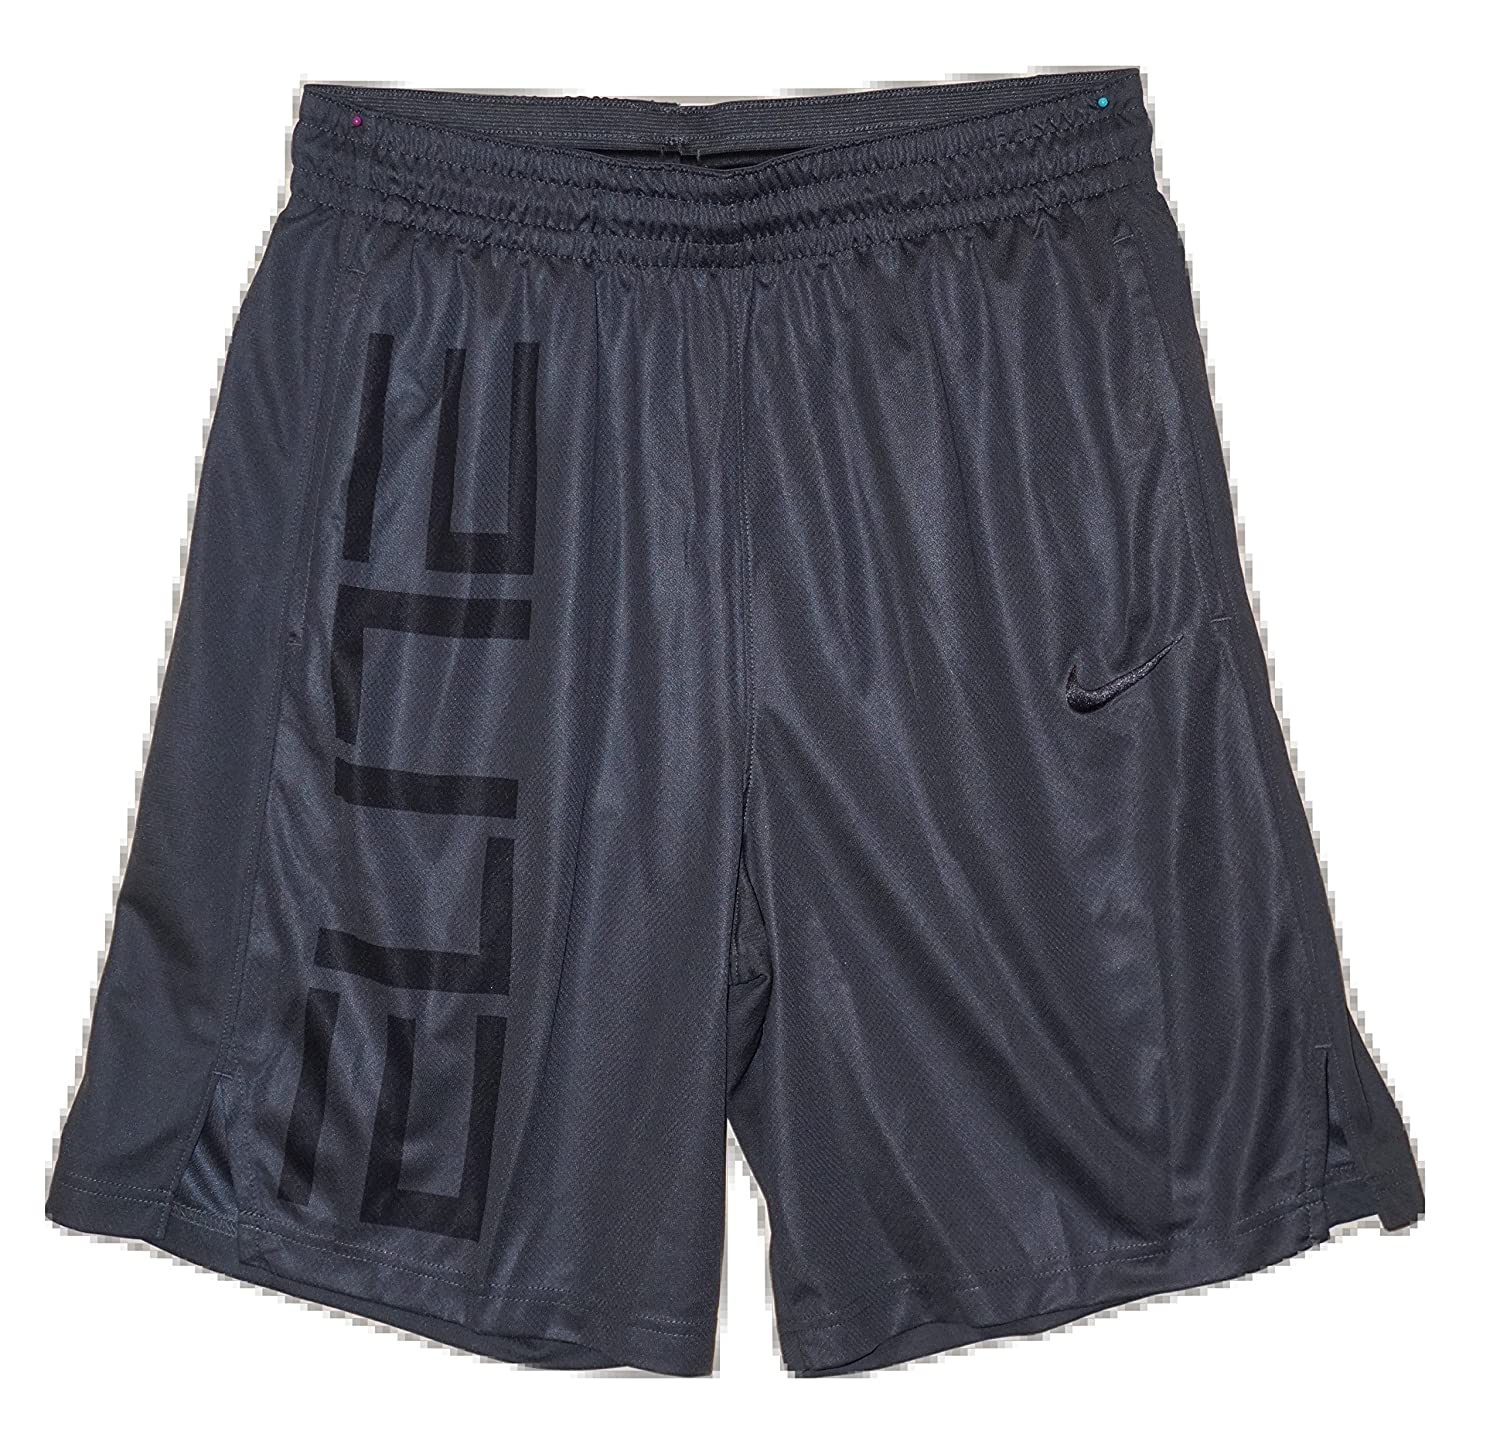 29c56720a430 Amazon.com  Nike MEN S ELITE DRI FIT BASKETBALL SHORTS (Large)  Clothing